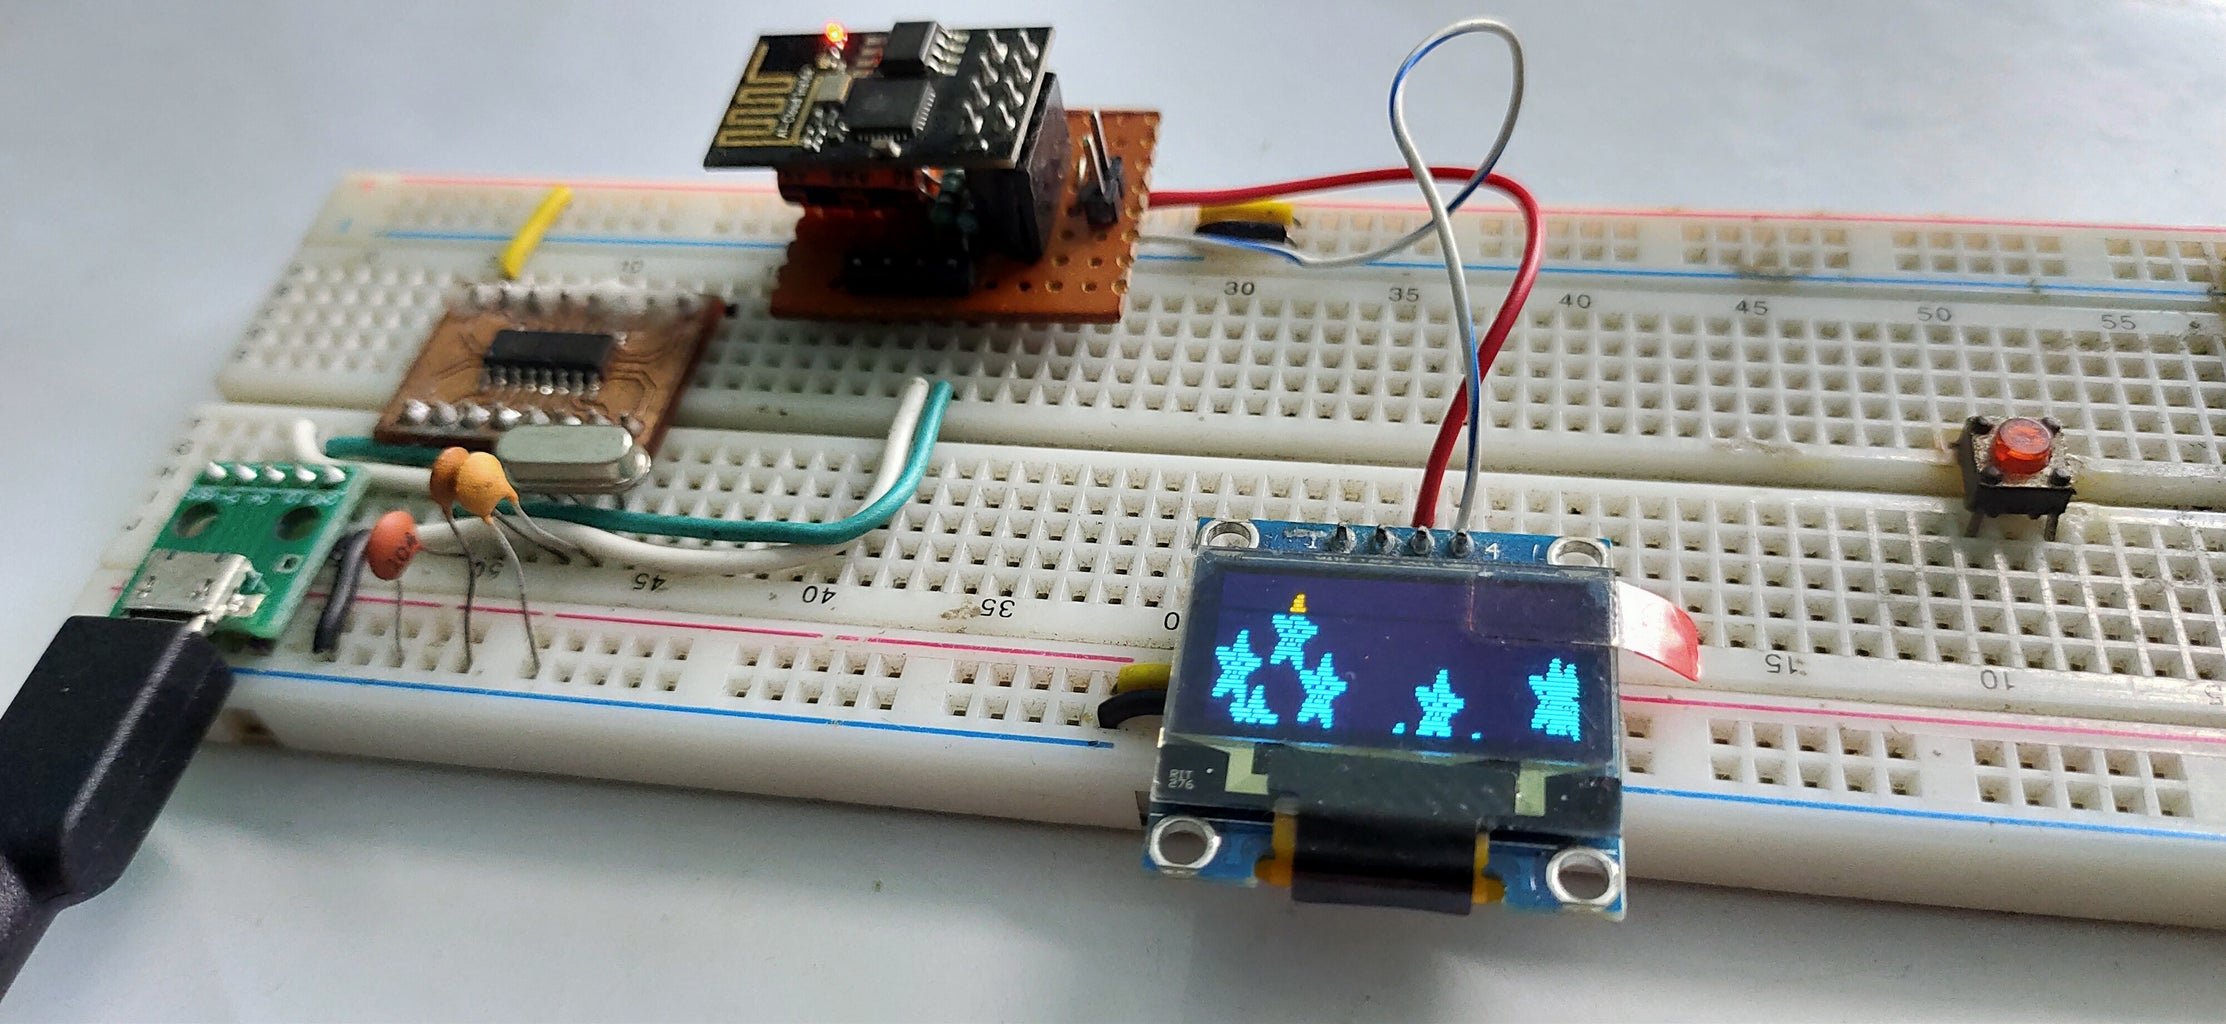 Testing Out the I2C Communication